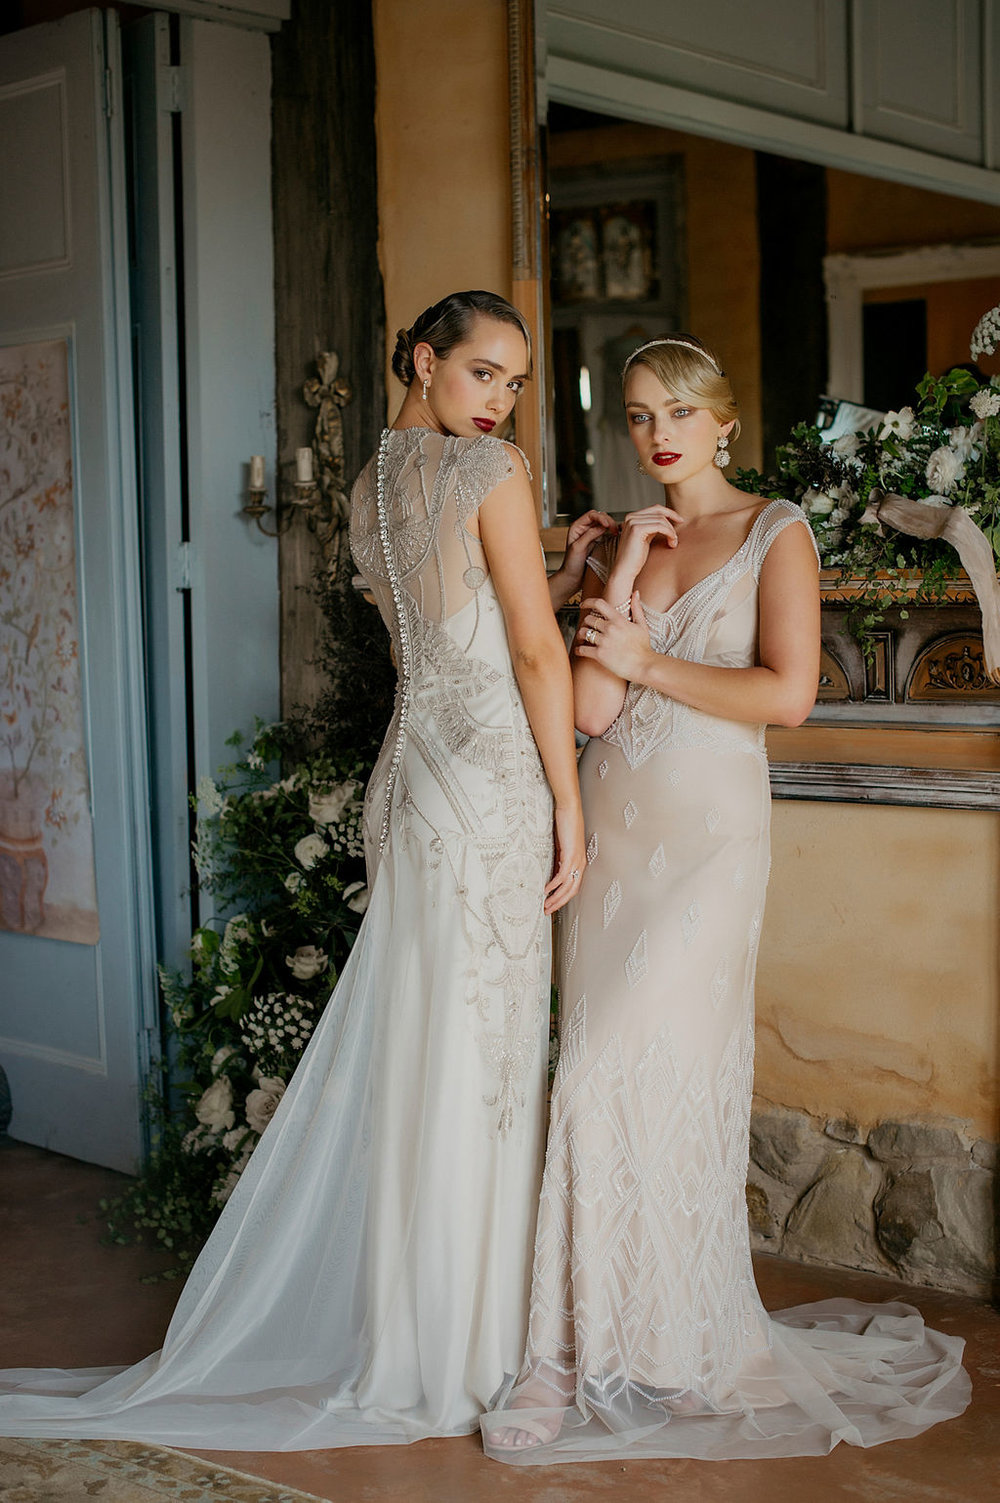 Polly and Tara Gwendolynne Wedding Dress  JessicaAbbyartdecoWEB-8257.jpg